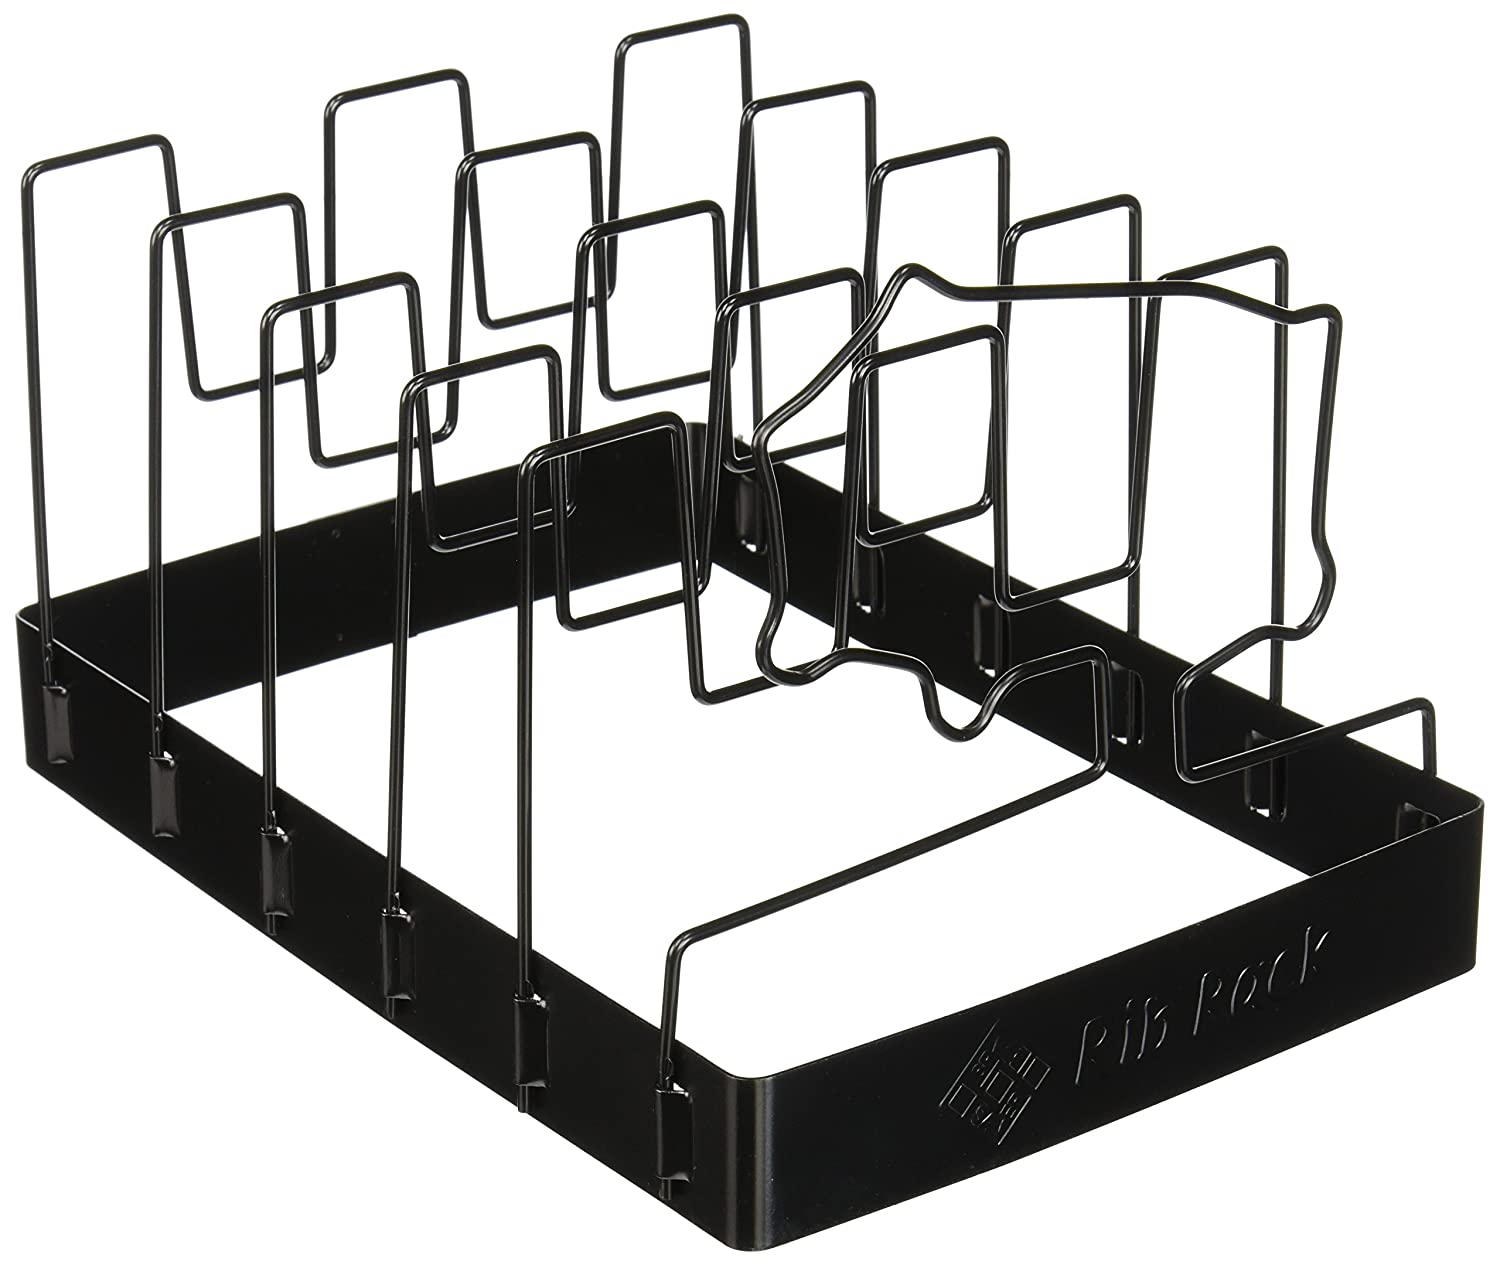 Charcoal Companion CC3011 SpaceSaver Non-Stick Rib Rack